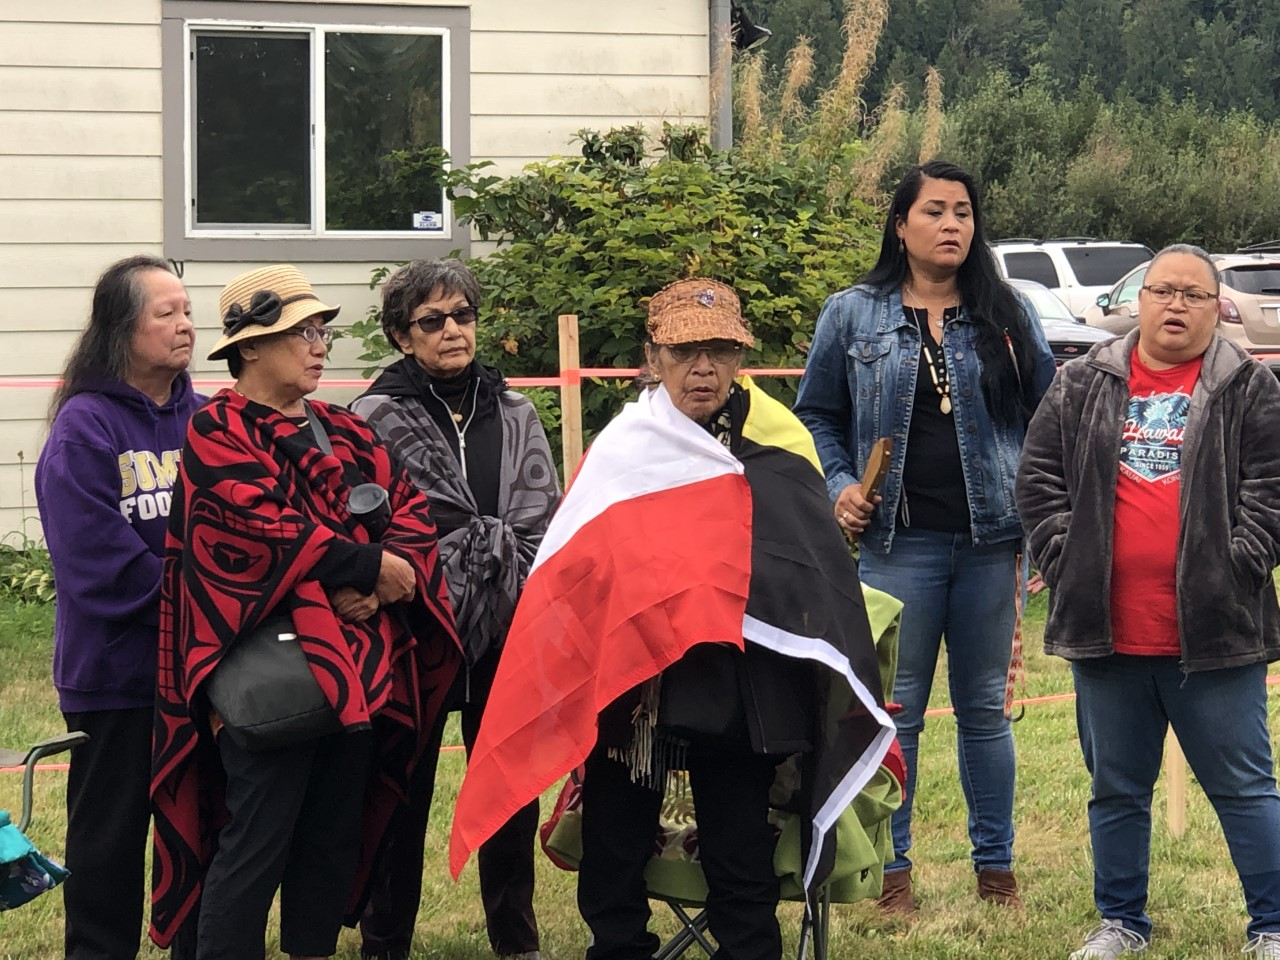 Nooksack 306 Disenrollment Saga Concluded Its Seventh Year